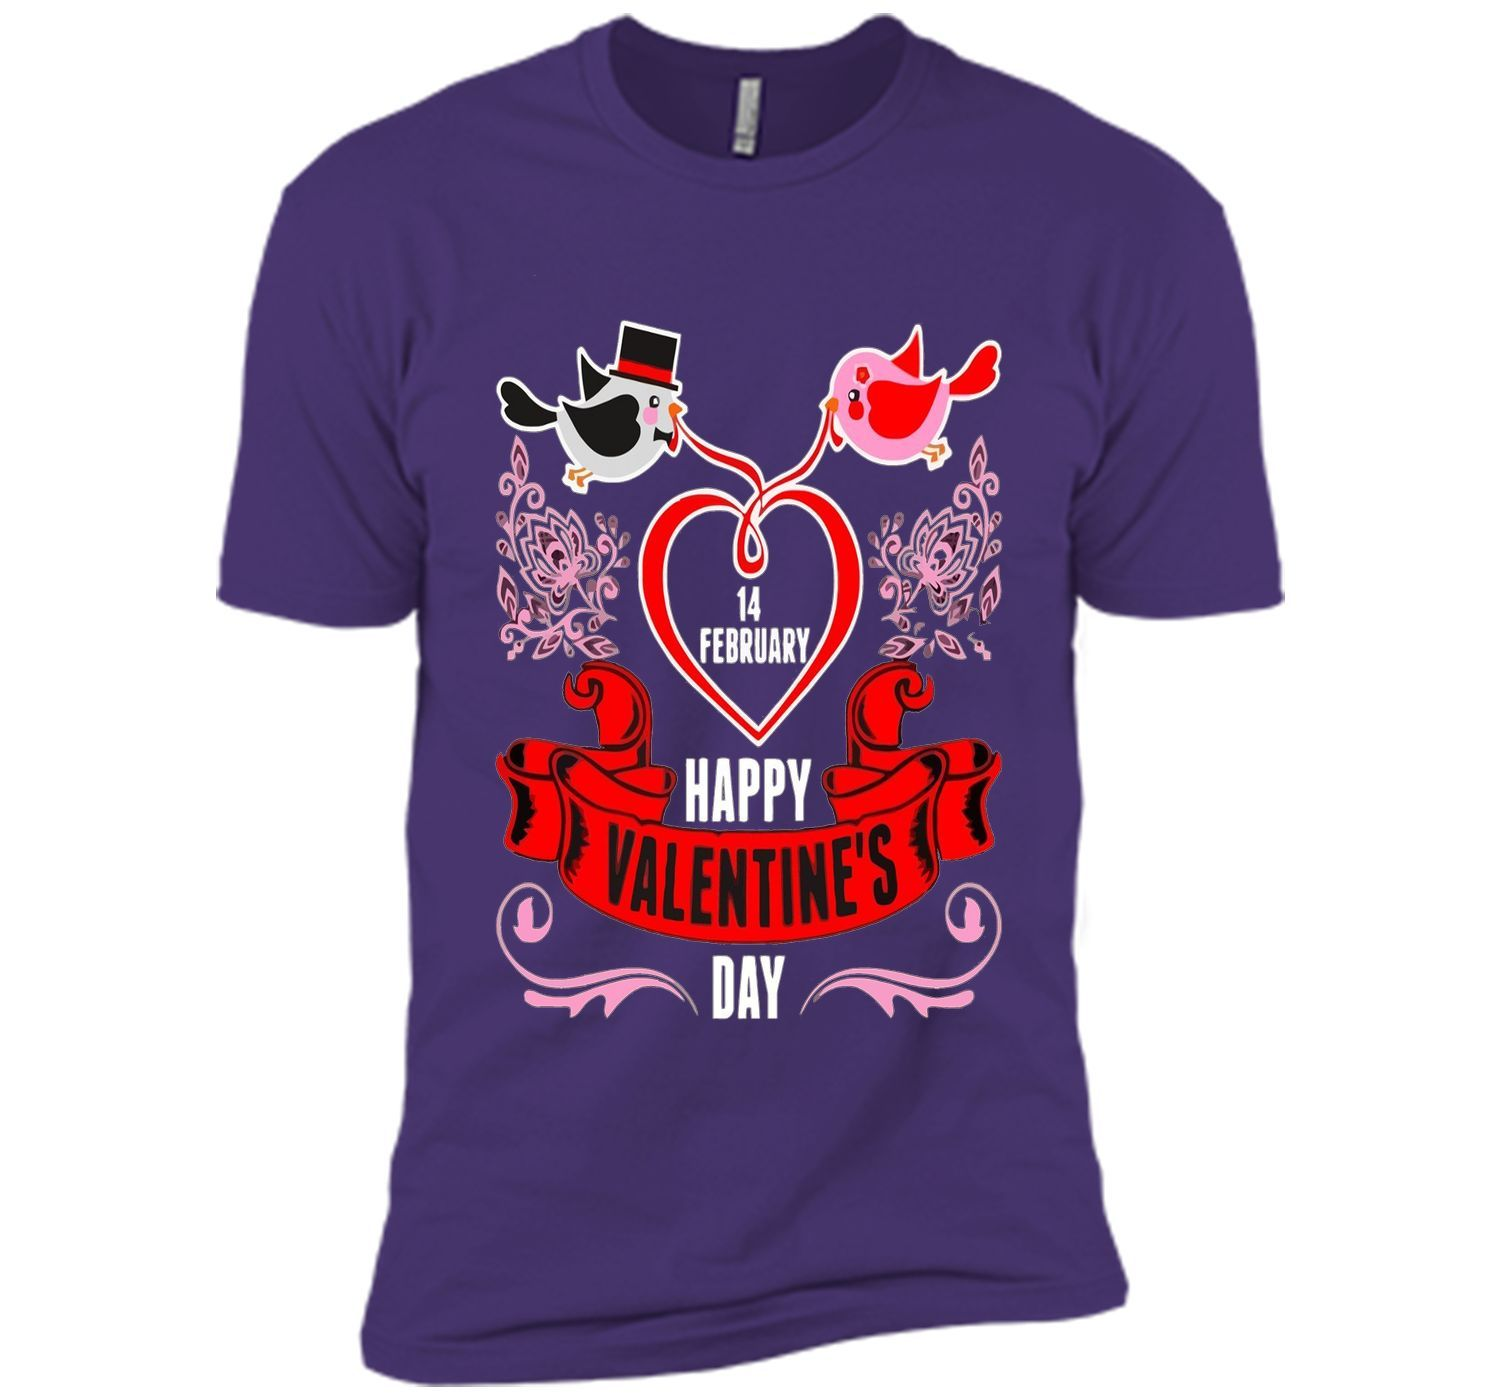 14 February Happy Valentines Day T-shirt